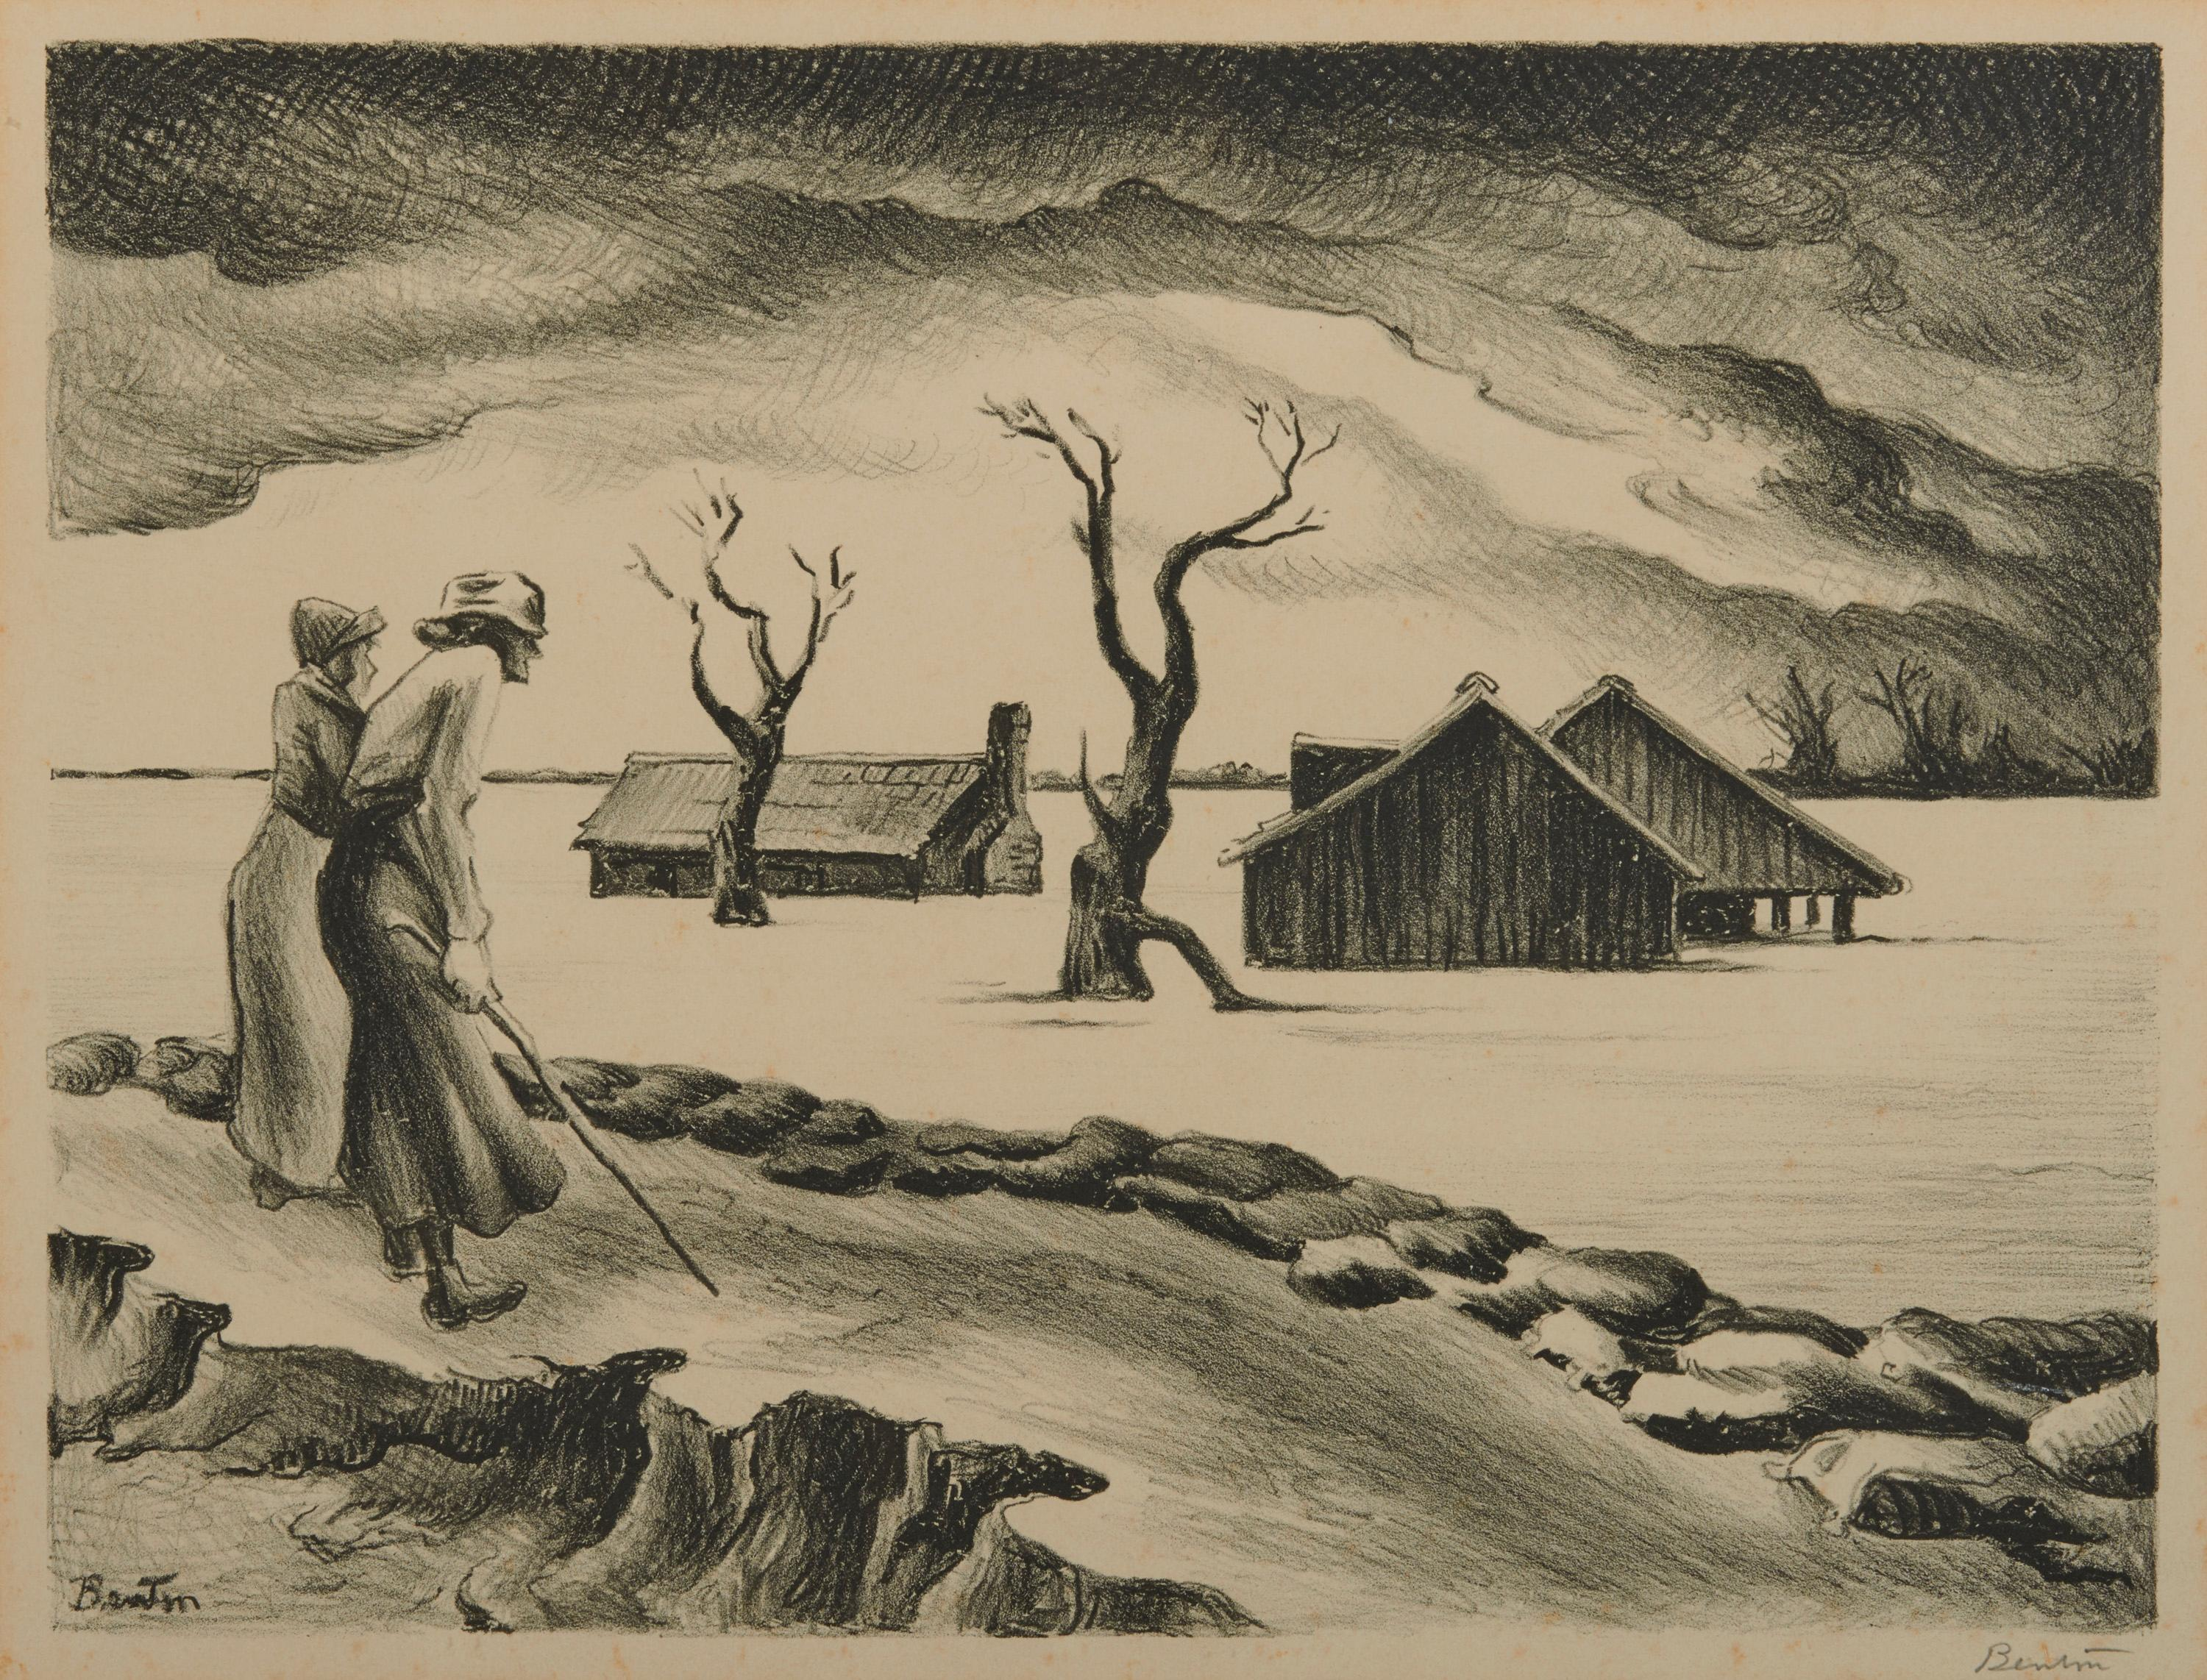 THOMAS HART BENTON, (American, 1889-1975), Flood, lithograph, plate: 9 1/8 x 12 1/8 in., frame: 18 1/4 x 21 3/4 in.